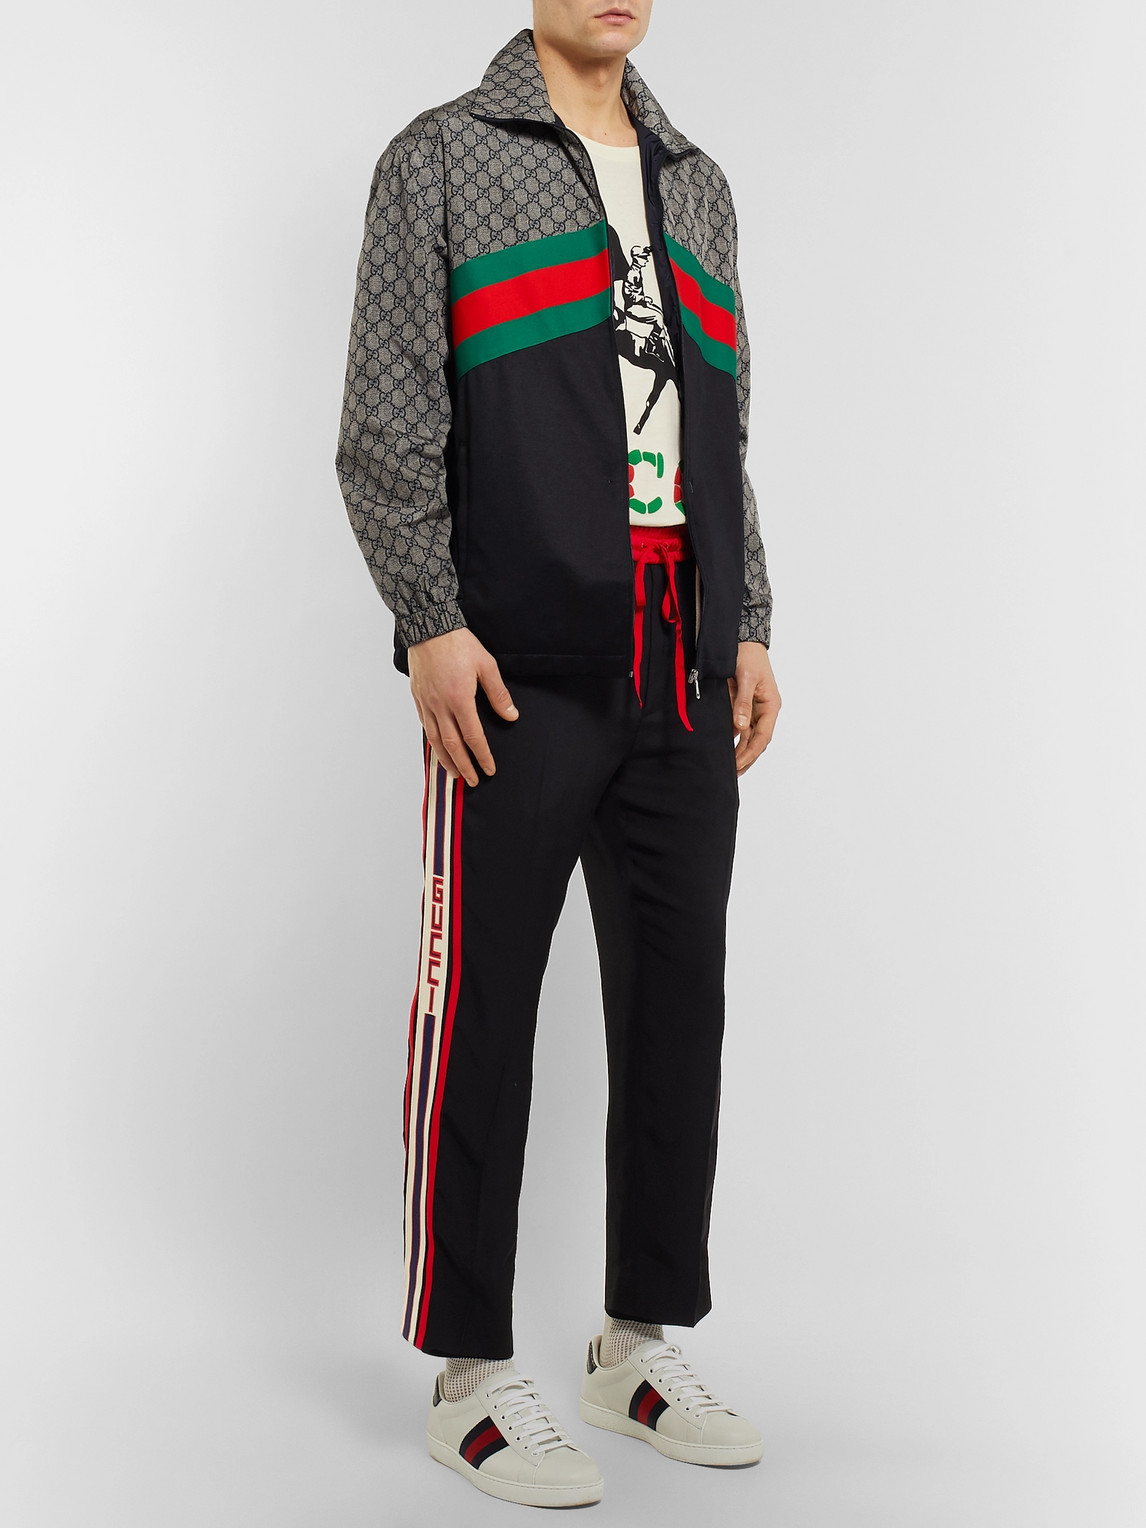 Gucci Jackets WEBBING-TRIMMED LOGO-PRINT NYLON AND TECH-JERSEY TRACK JACKET